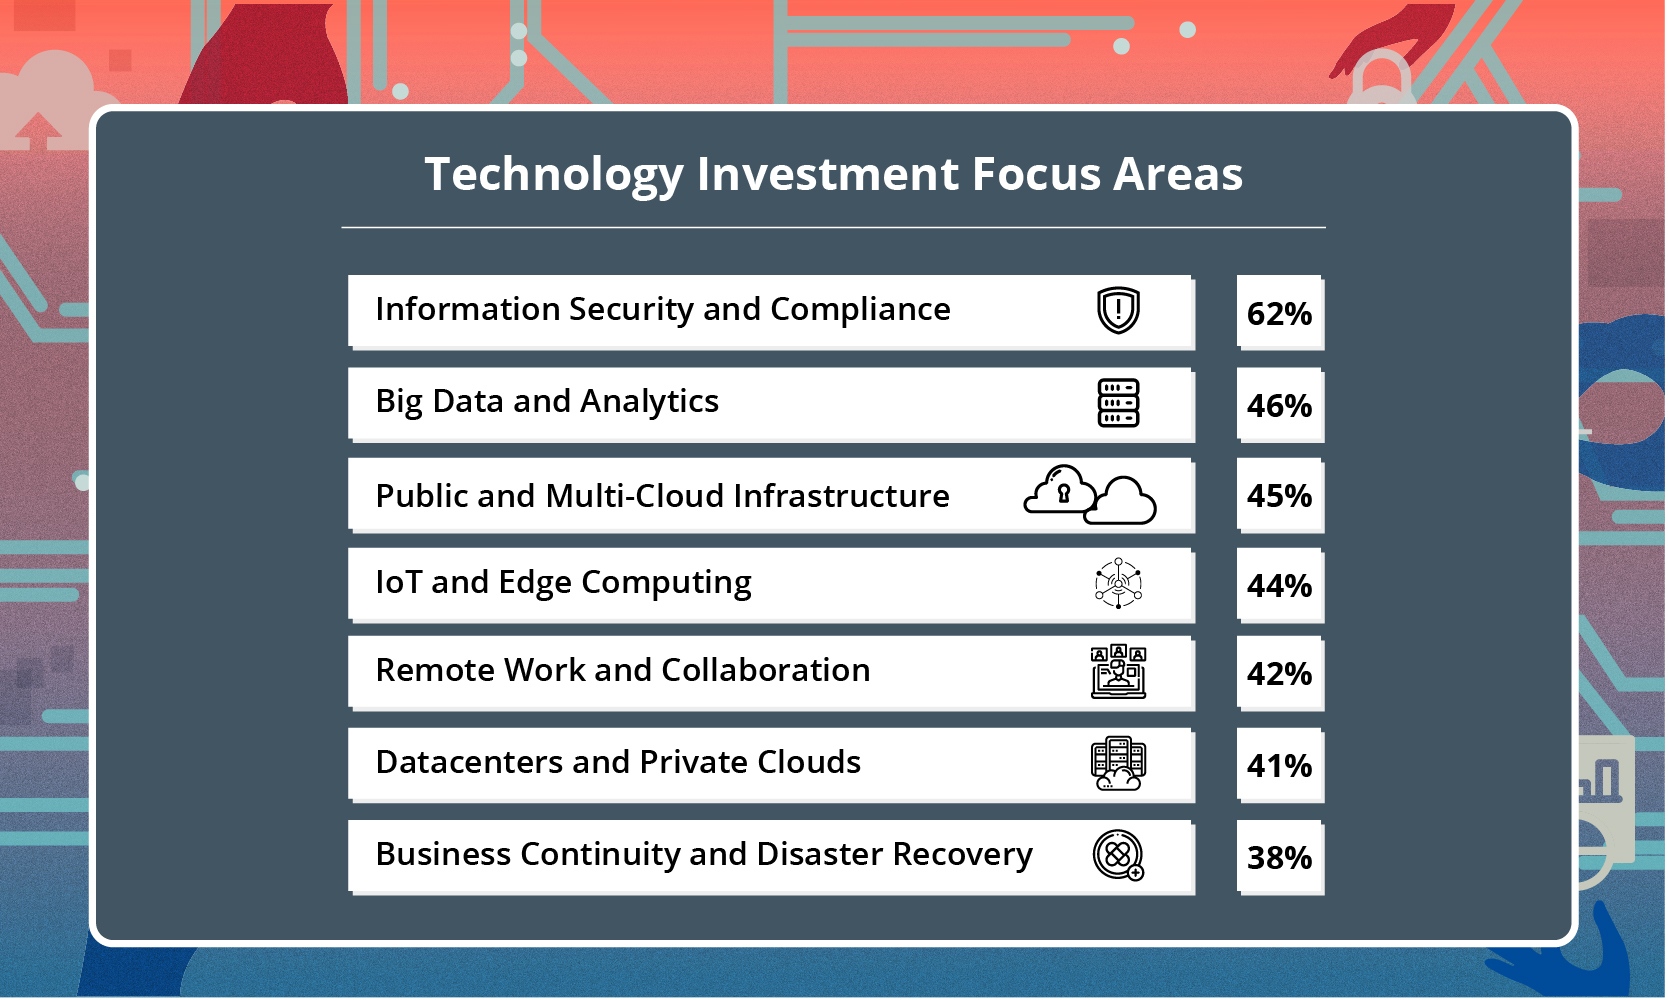 Technology Investment Focus Areas